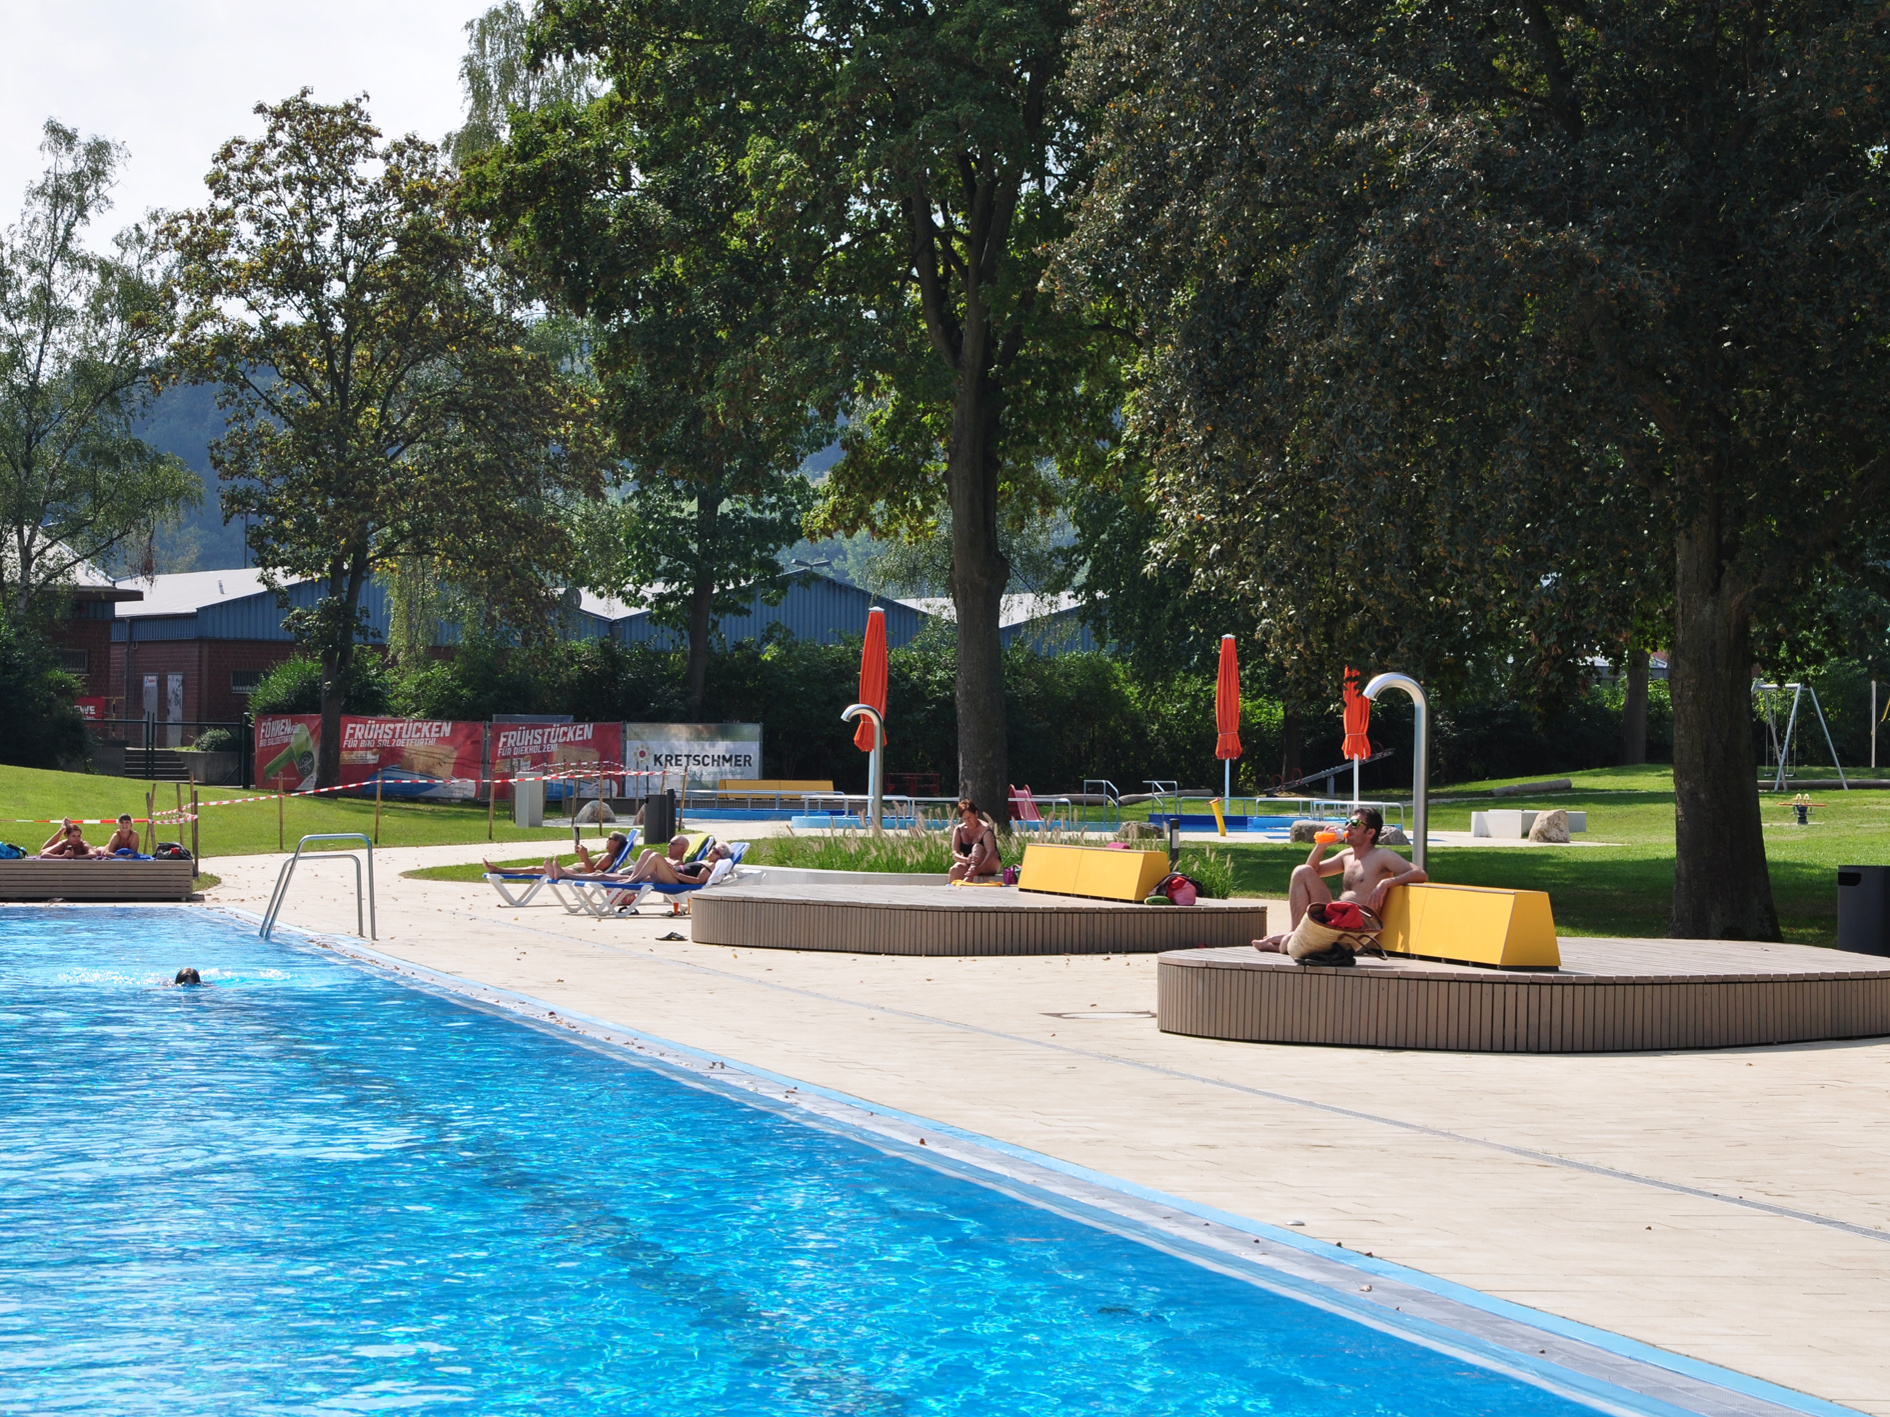 1511_Freibad_Bad_Salzdetfurth_4.jpg